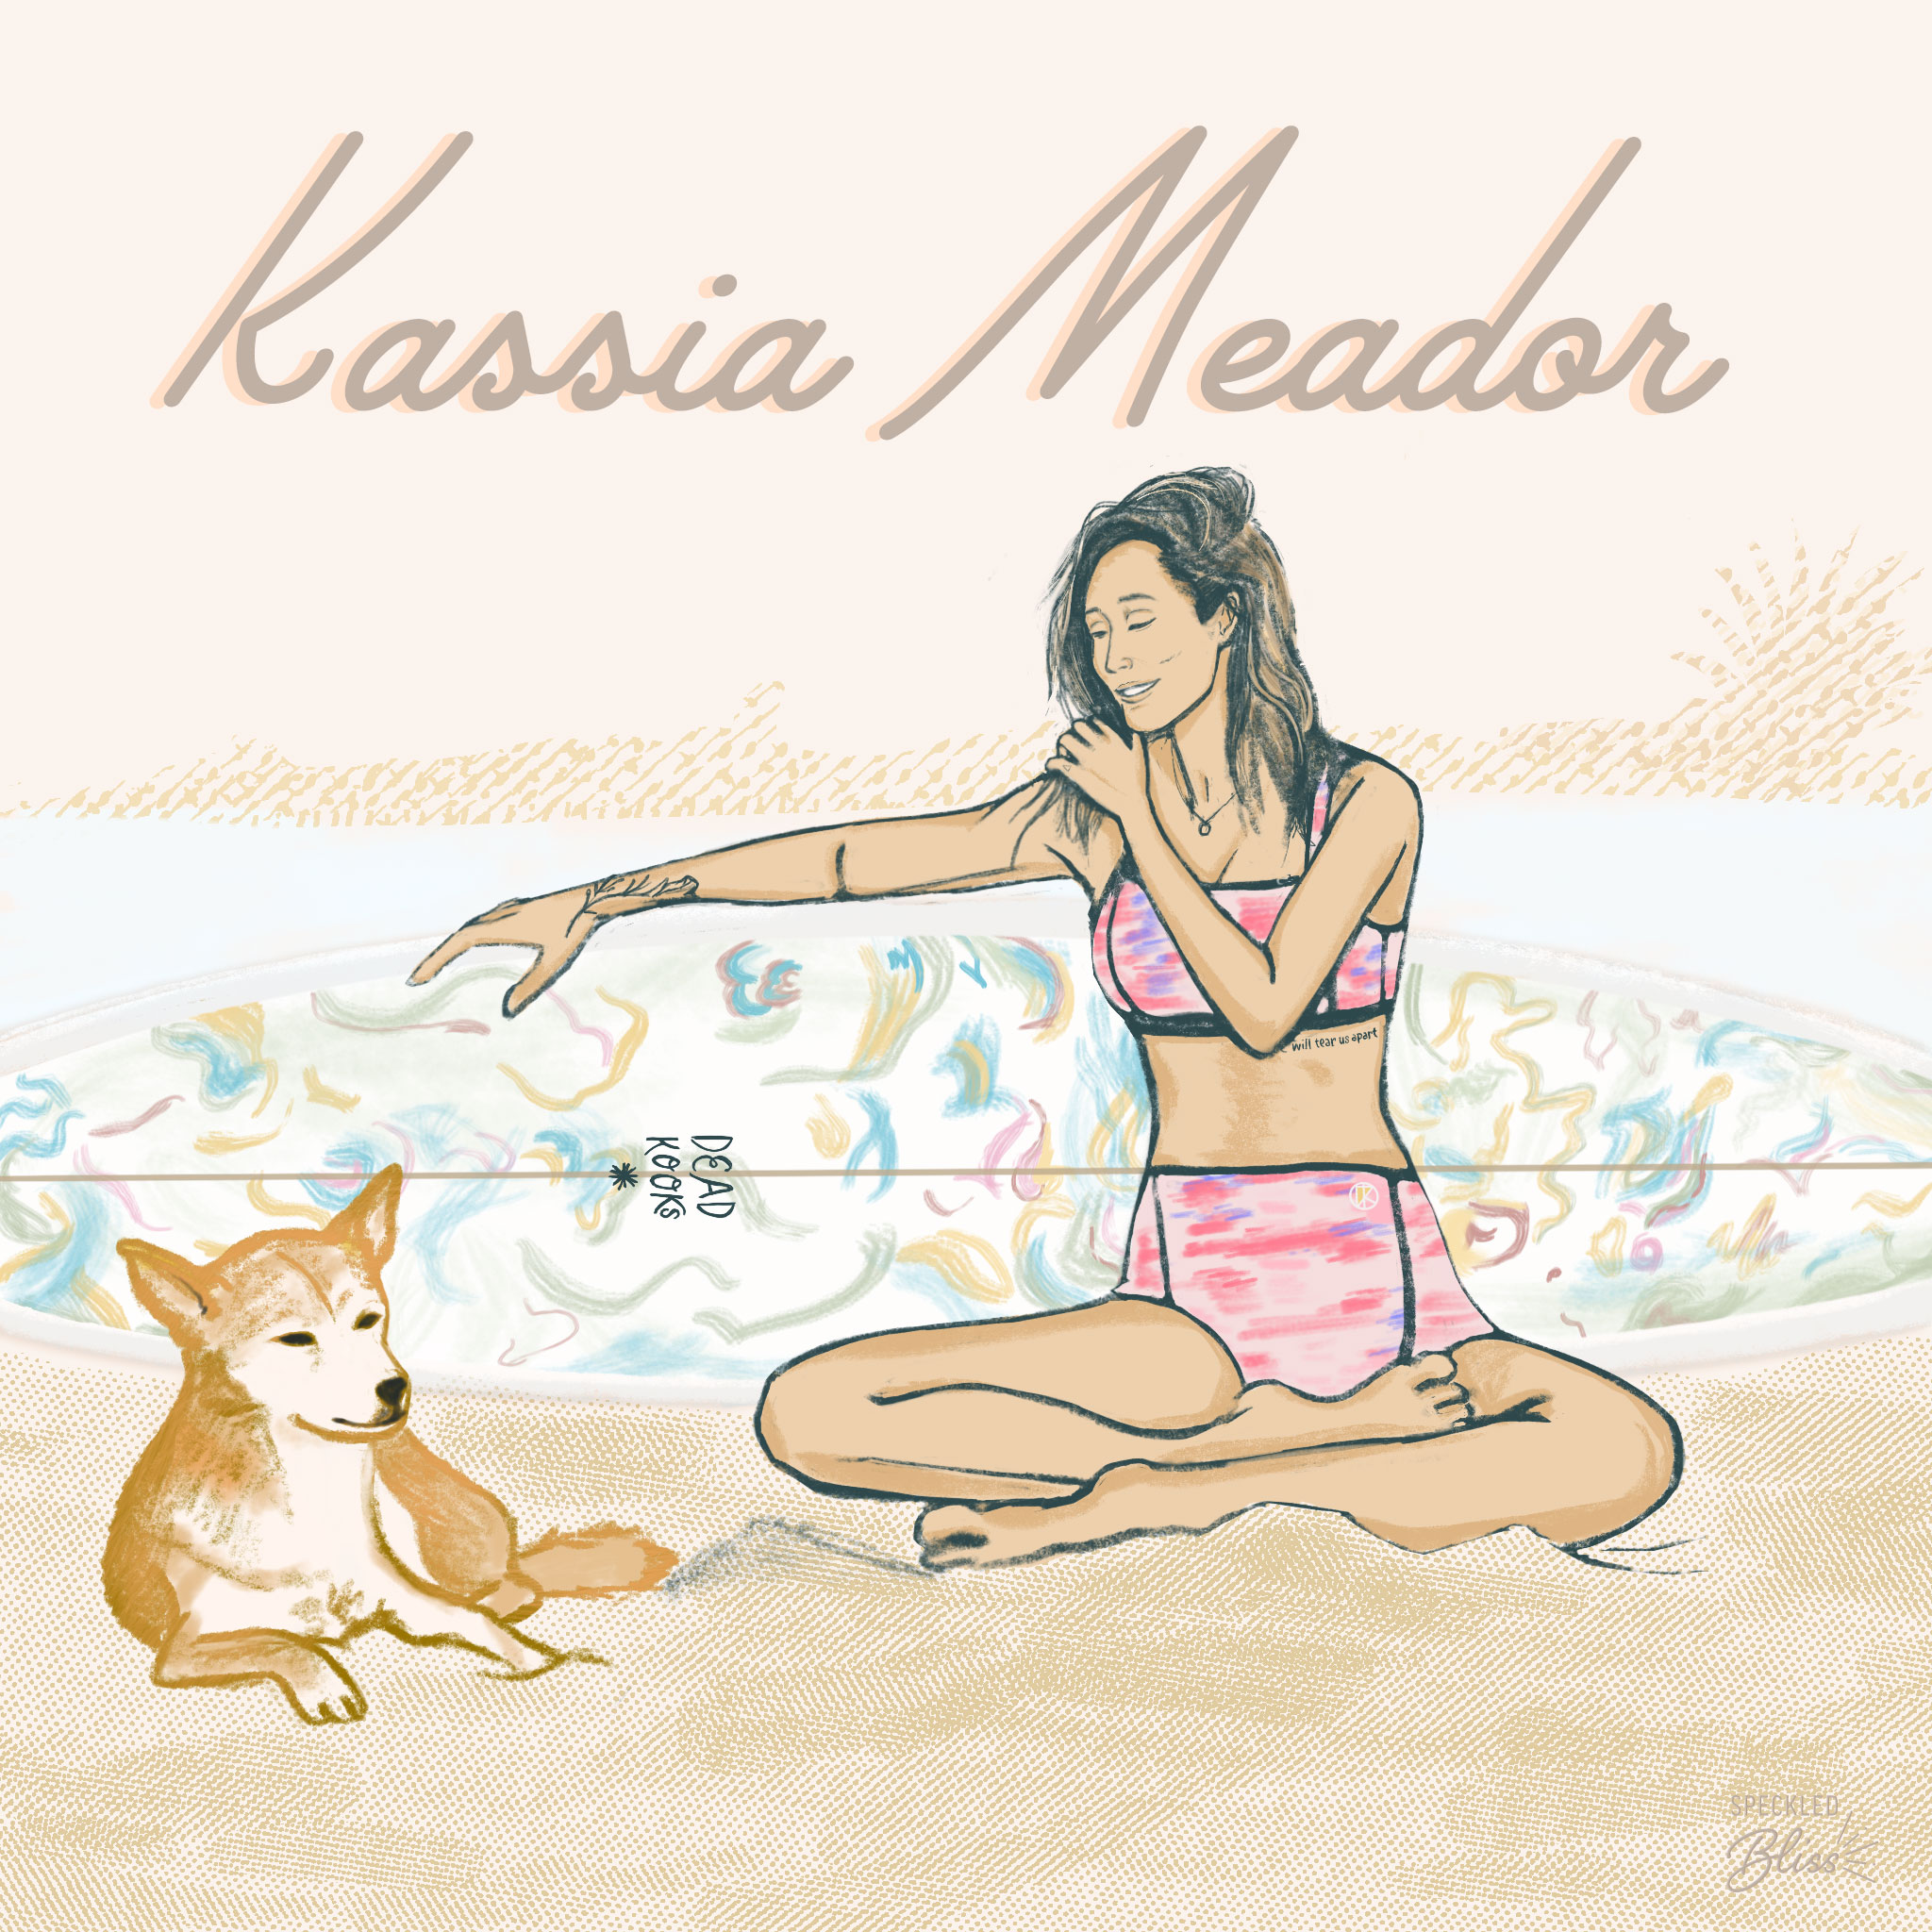 "Meet Kassia Meador. Surfer, Designer, Photographer. California born & bred. Crowned ""Queen of Noseriding"" by the New York Times in 2011.   Throughout her 17 years of longboarding as a pro, she designed activewear and products under her sponsors like Roxy. Her entrepreneurial spirit led her to naturally evolve creatively and start KASSIA+SURF, her own line of eco-conscious wetsuits for women, which has their own wetsuit recycling program. She also leads surf, yoga, & sound healing retreats to connect with her community.   What I admire about Kassia is that, in more ways than one, she inspires and empowers women to expand their minds, bodies, and souls through healthy active lifestyle choices and experiences. Now that's a mission I can get behind!  You can support & follow Kassia at  @kassiasurf"